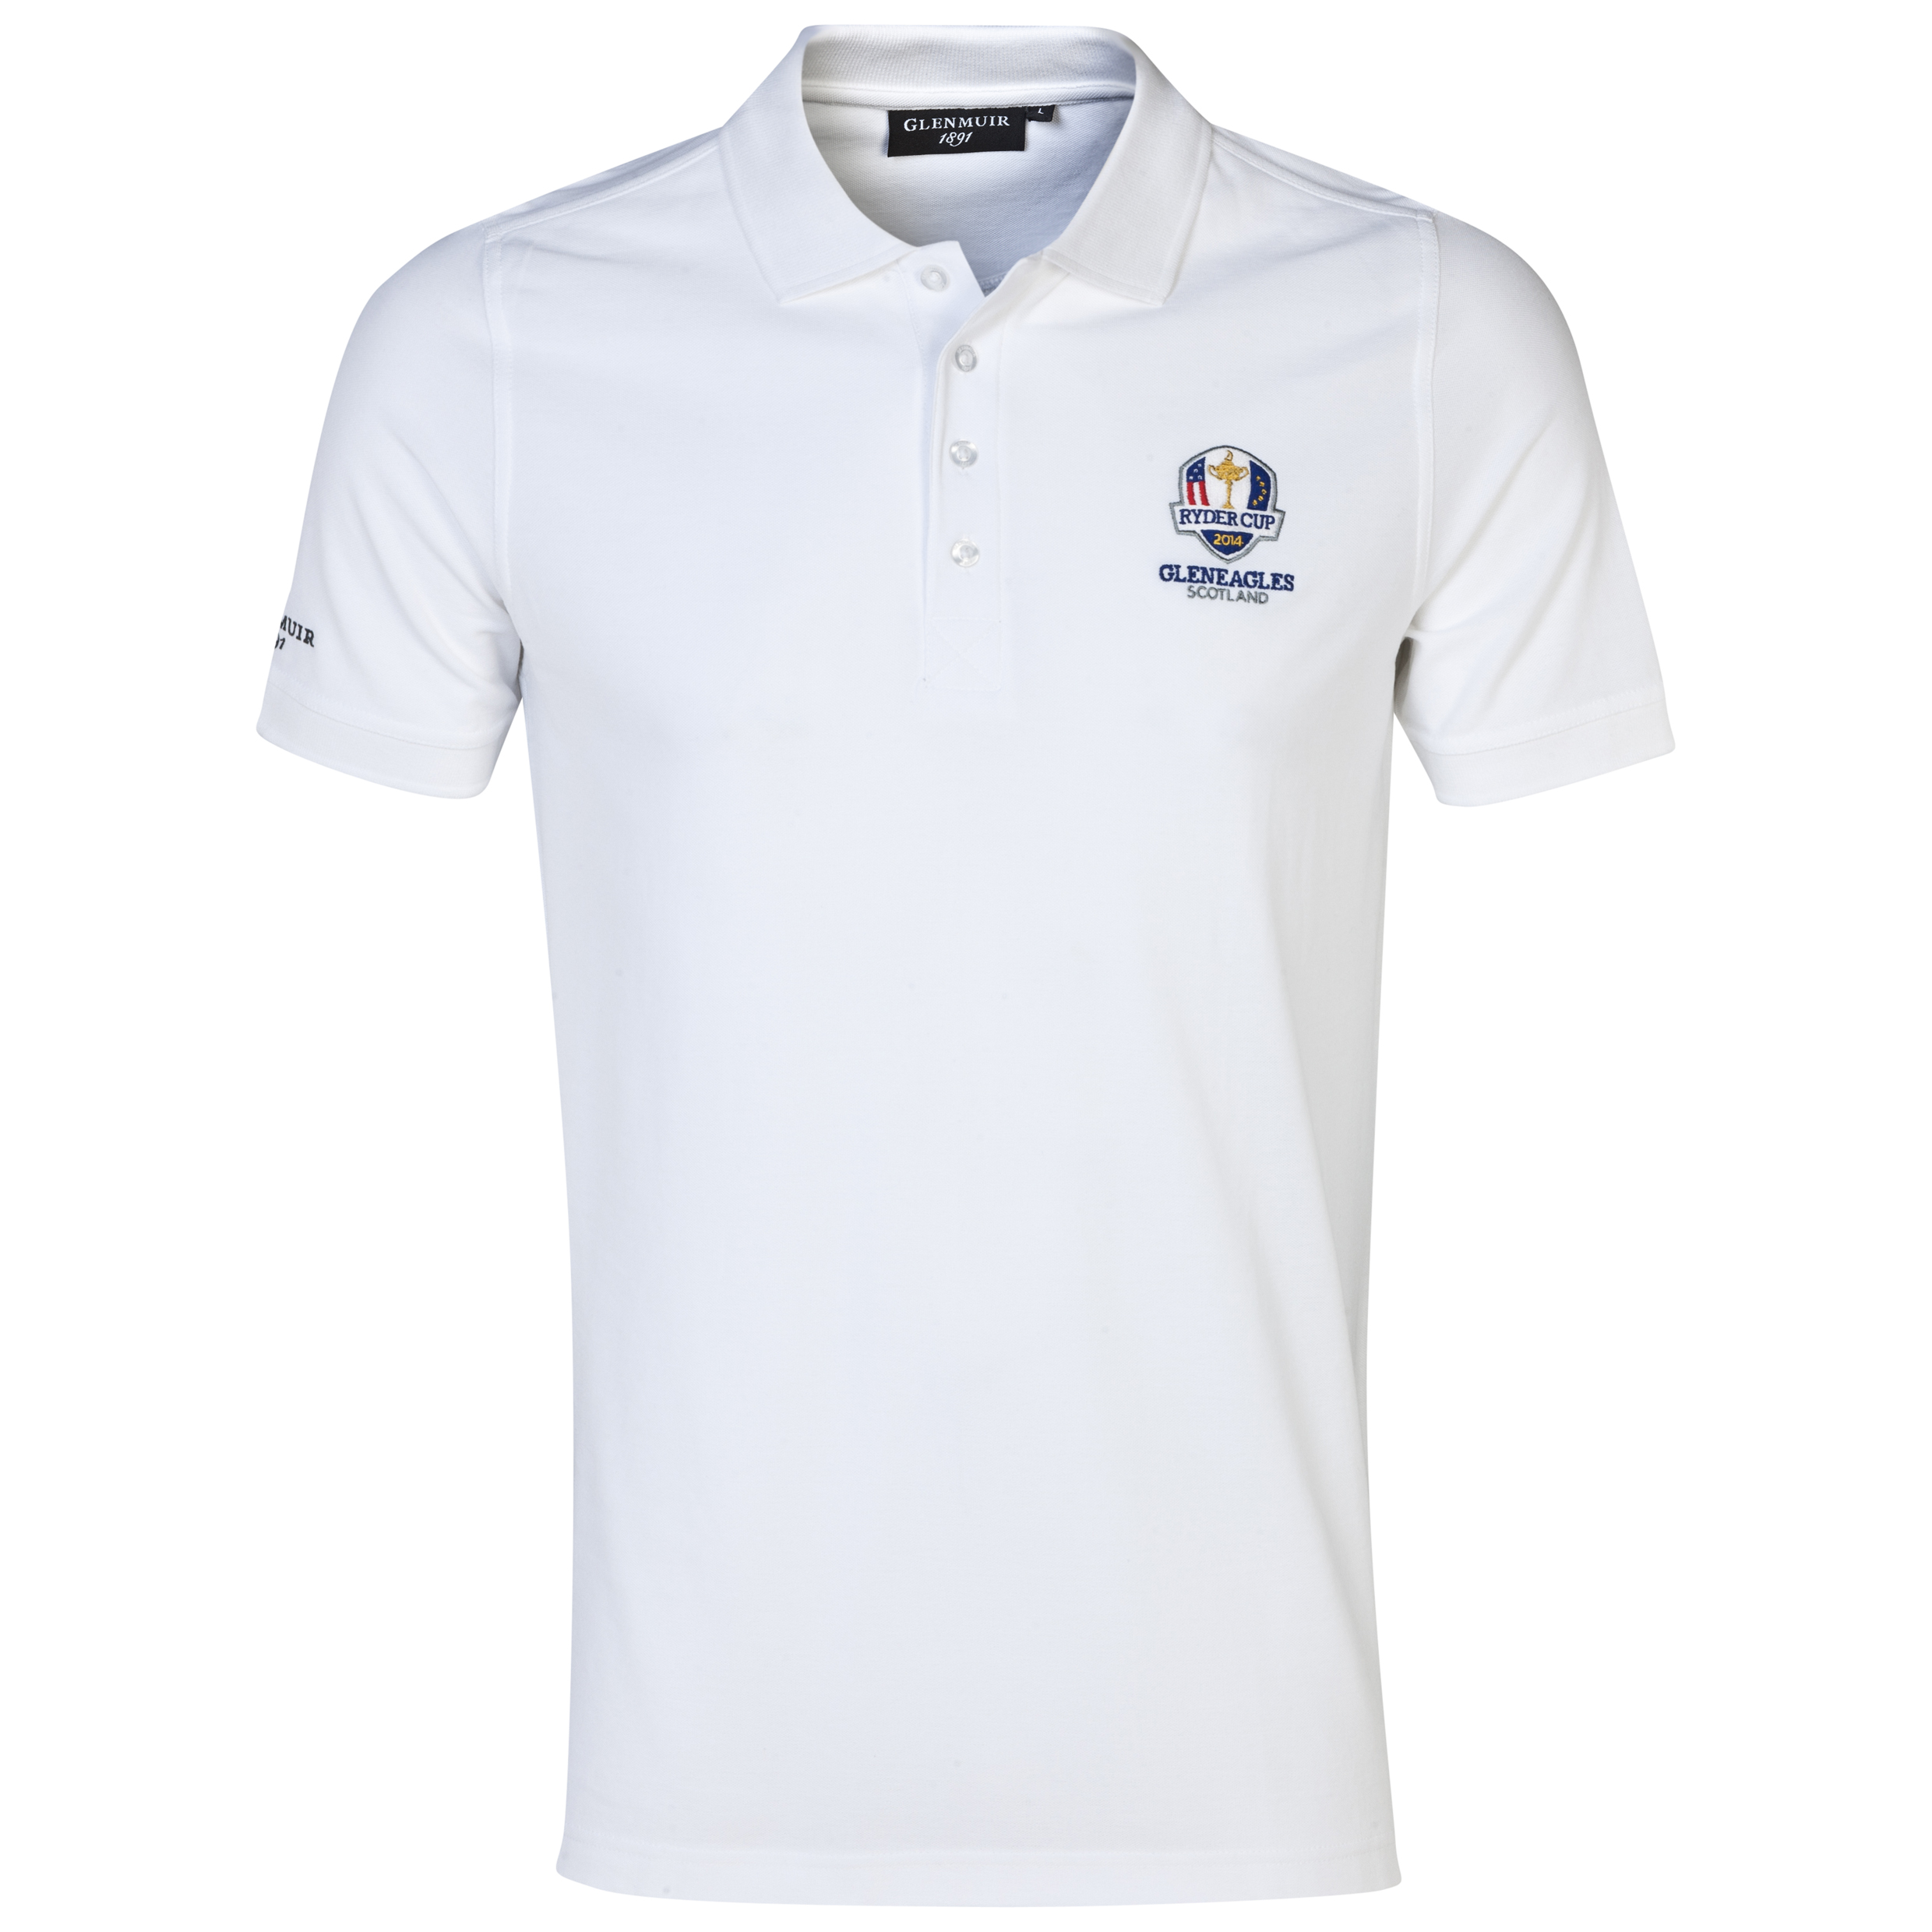 The 2014 Ryder Cup Glenmuir Kinloch Cotton Polo White